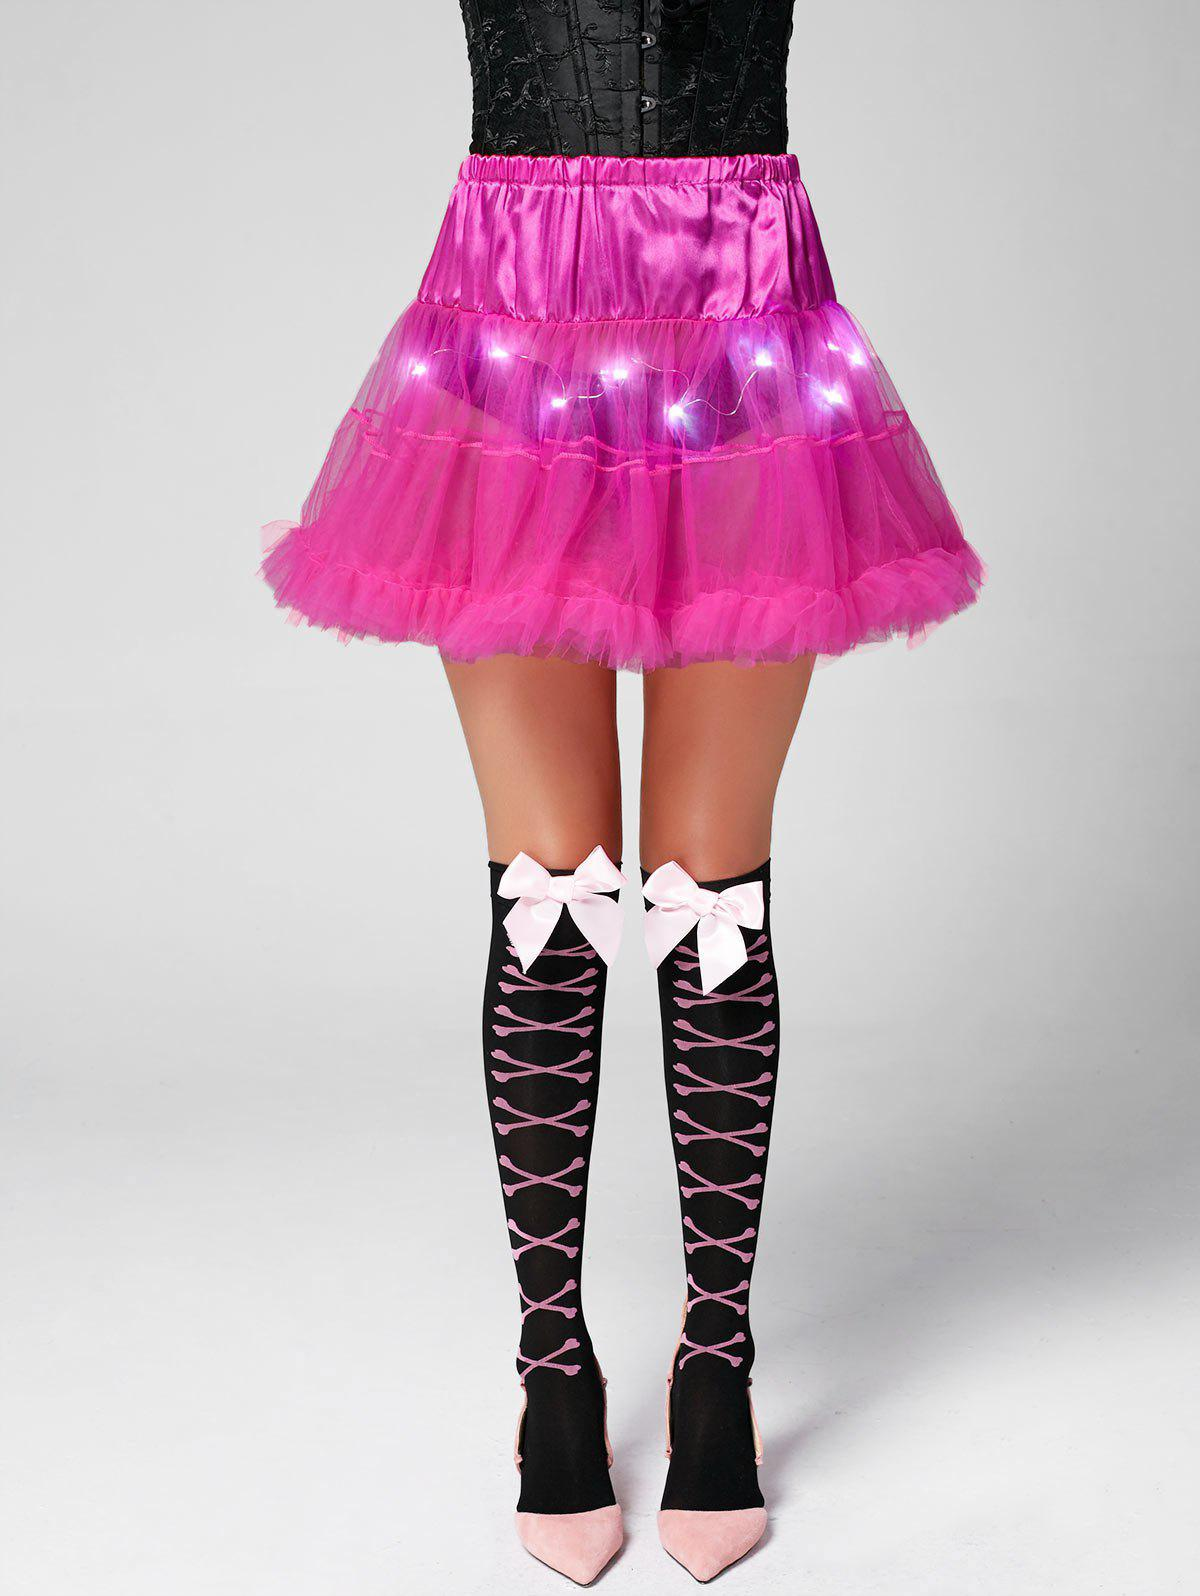 Ruffles Light Up Tutu Voile Cosplay Jupe - [